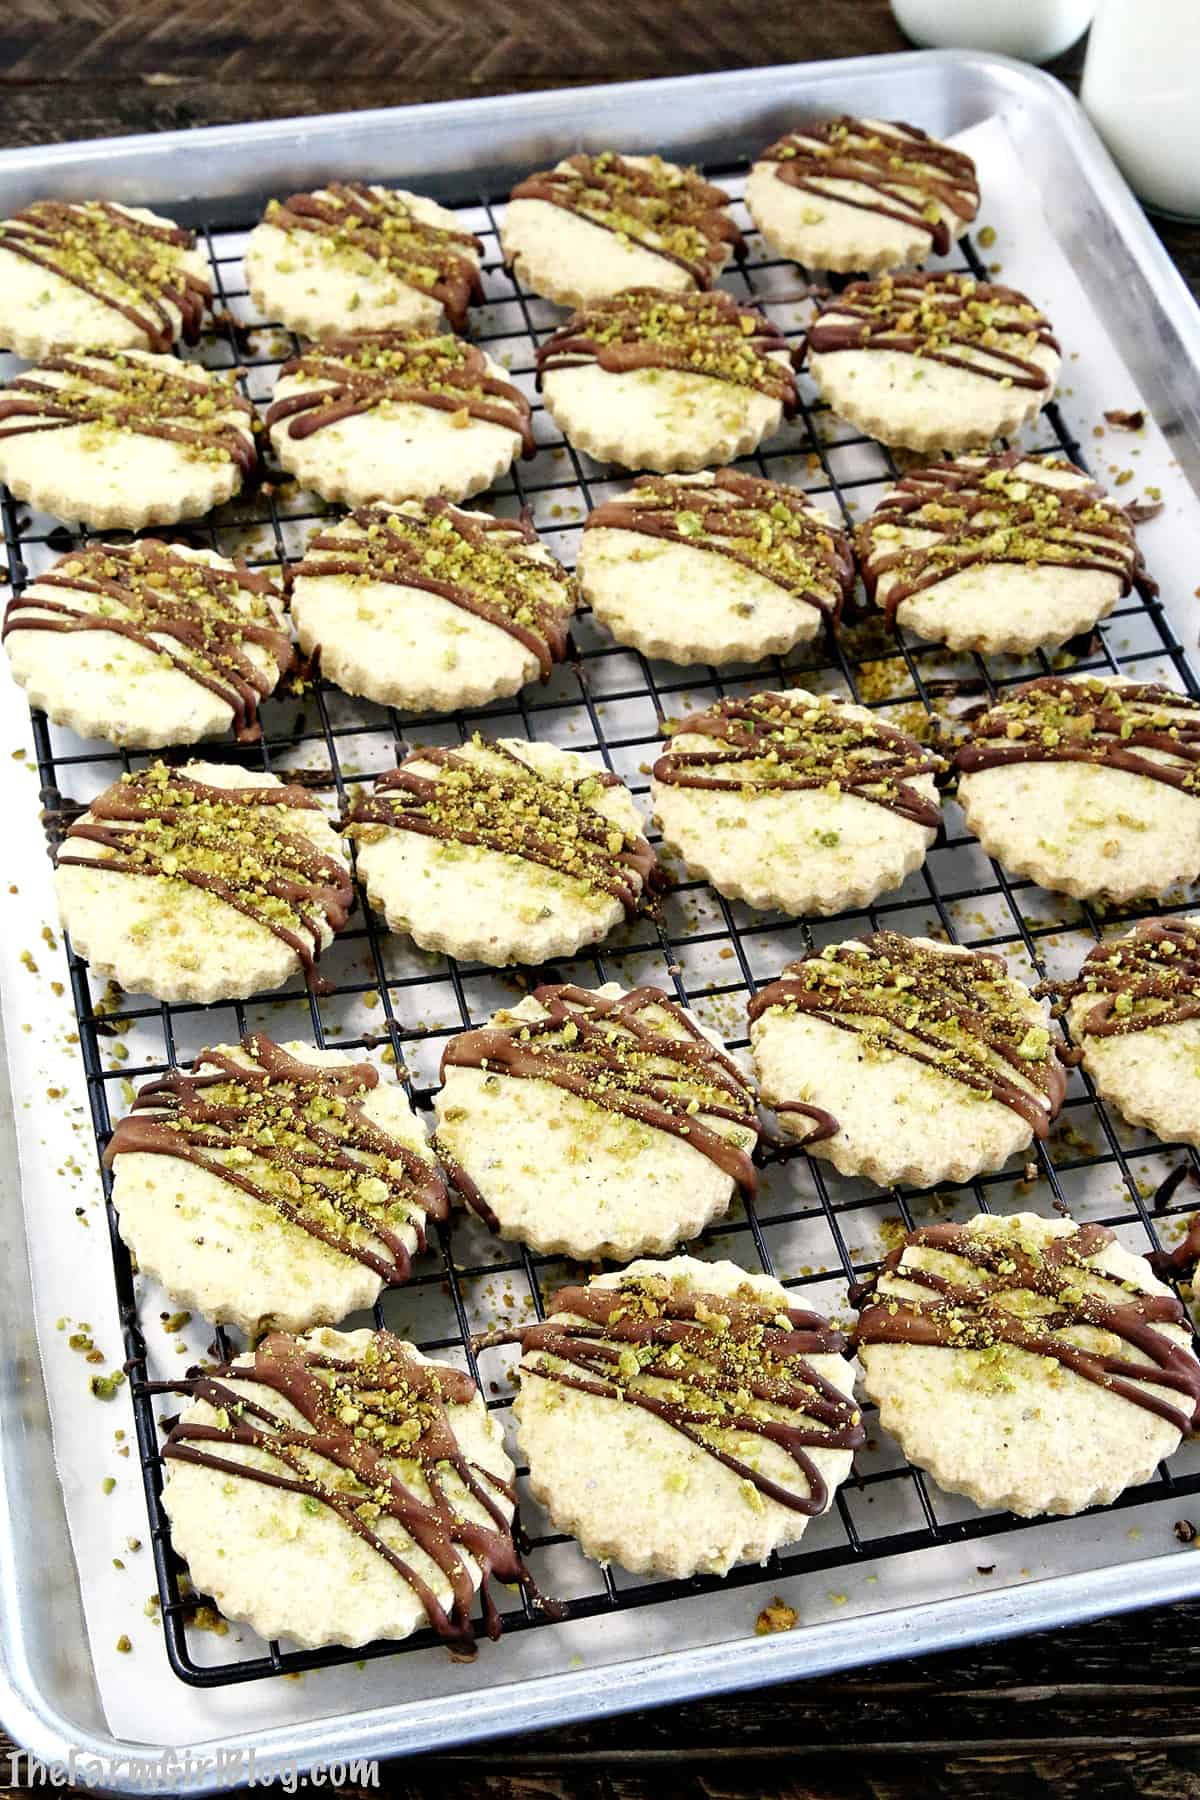 Rich, buttery, and crunchy Keto Gluten-Free Pistachio Shortbread Cookies are super delicious, without the naughty stuff. It's hard to tell that these are keto shortbread cookies, and aren't loaded with sugar and carbs unless you specifically mention it.